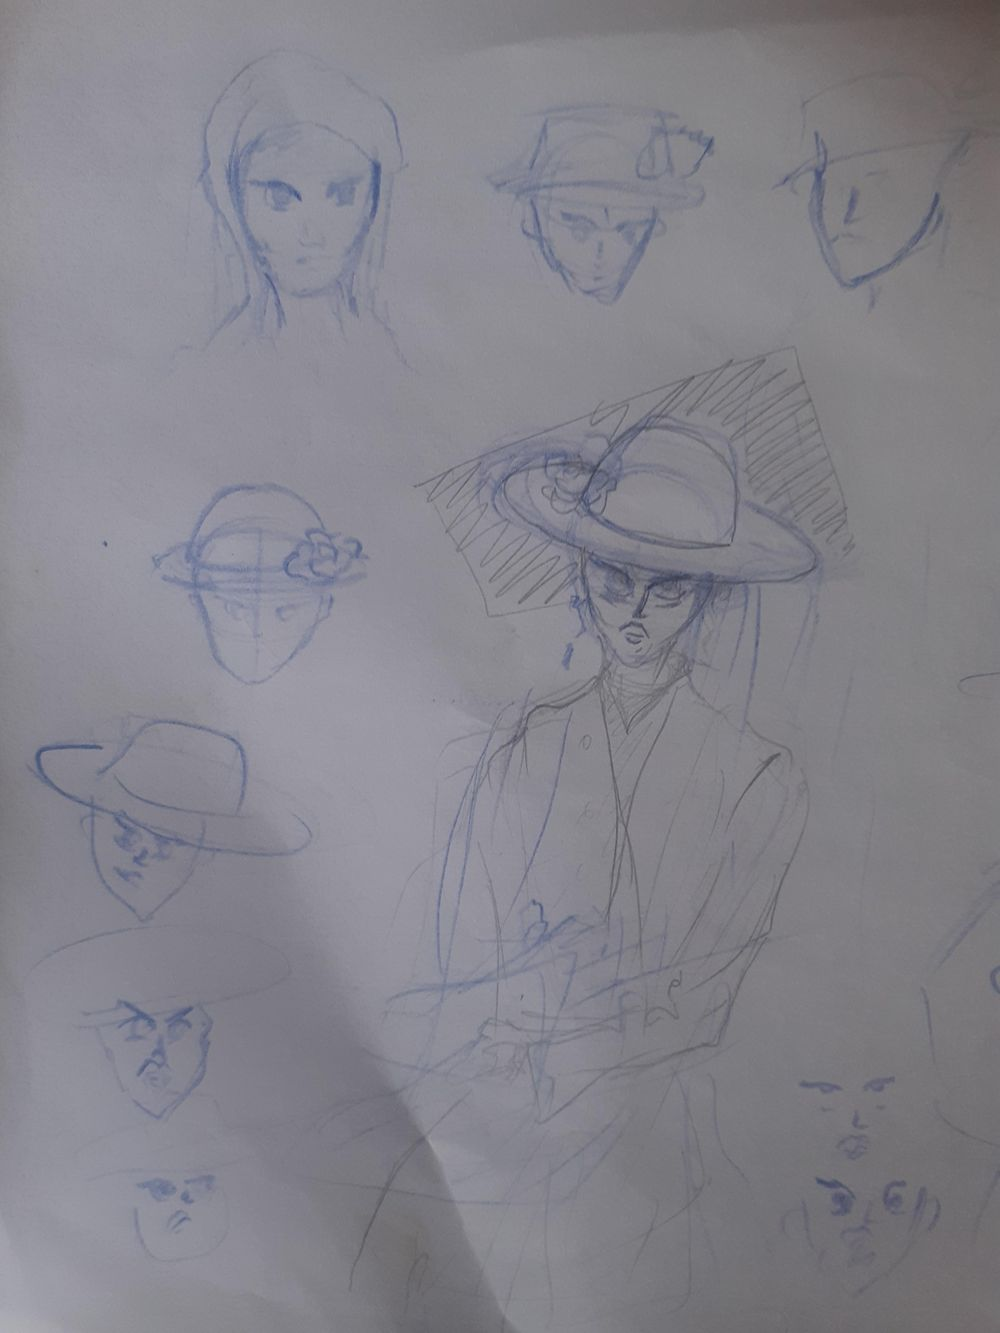 Character design - image 4 - student project